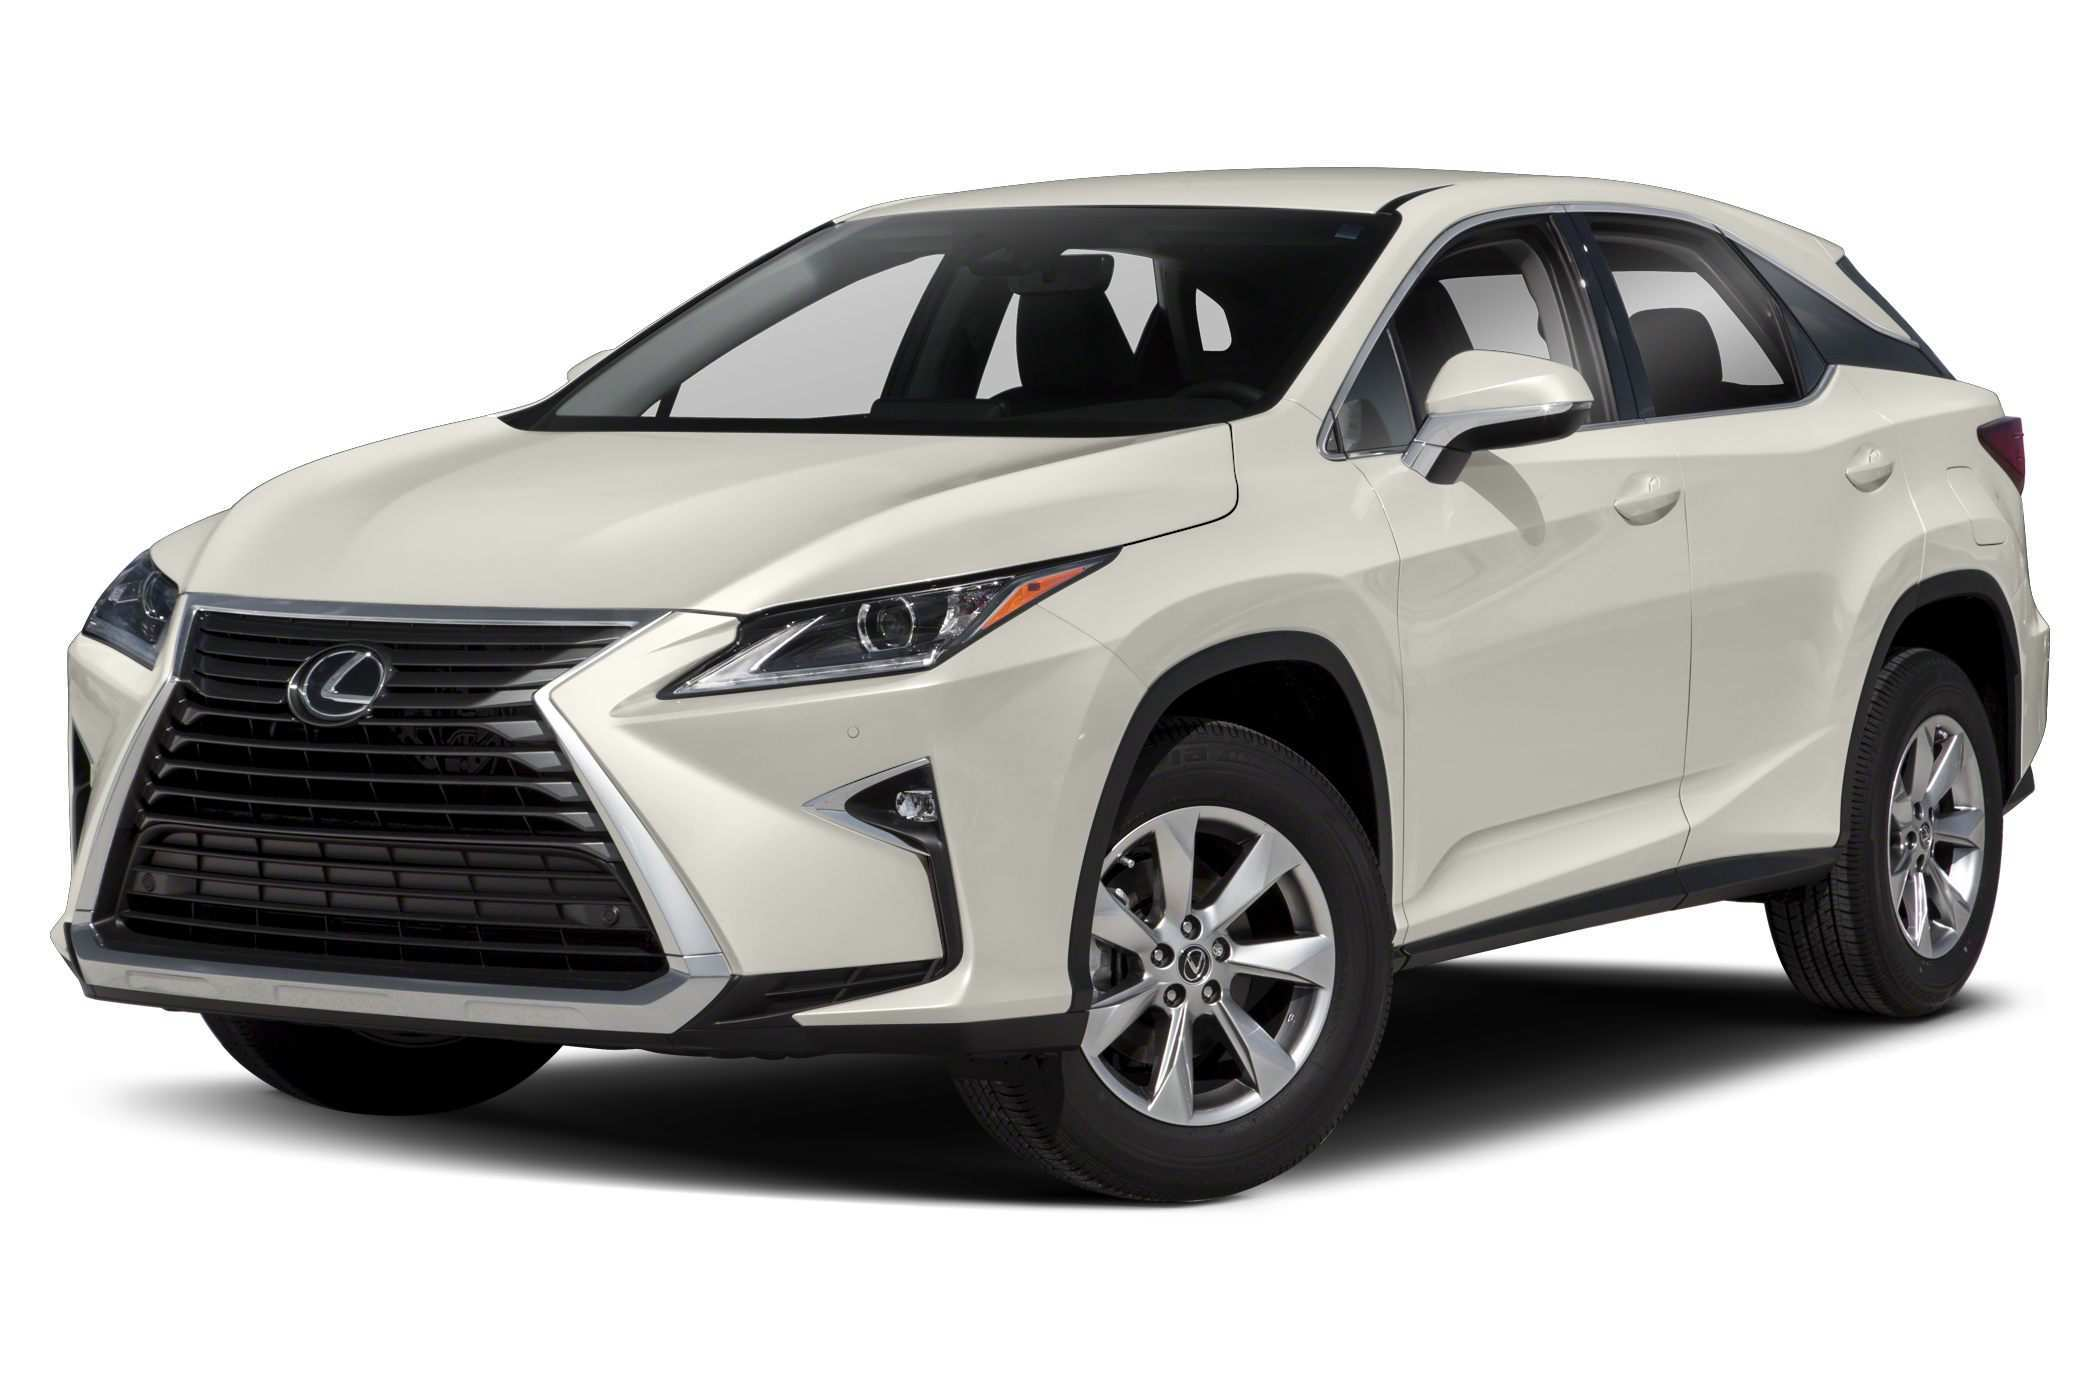 79 Gallery of When Do The 2020 Lexus Cars Come Out Price with When Do The 2020 Lexus Cars Come Out